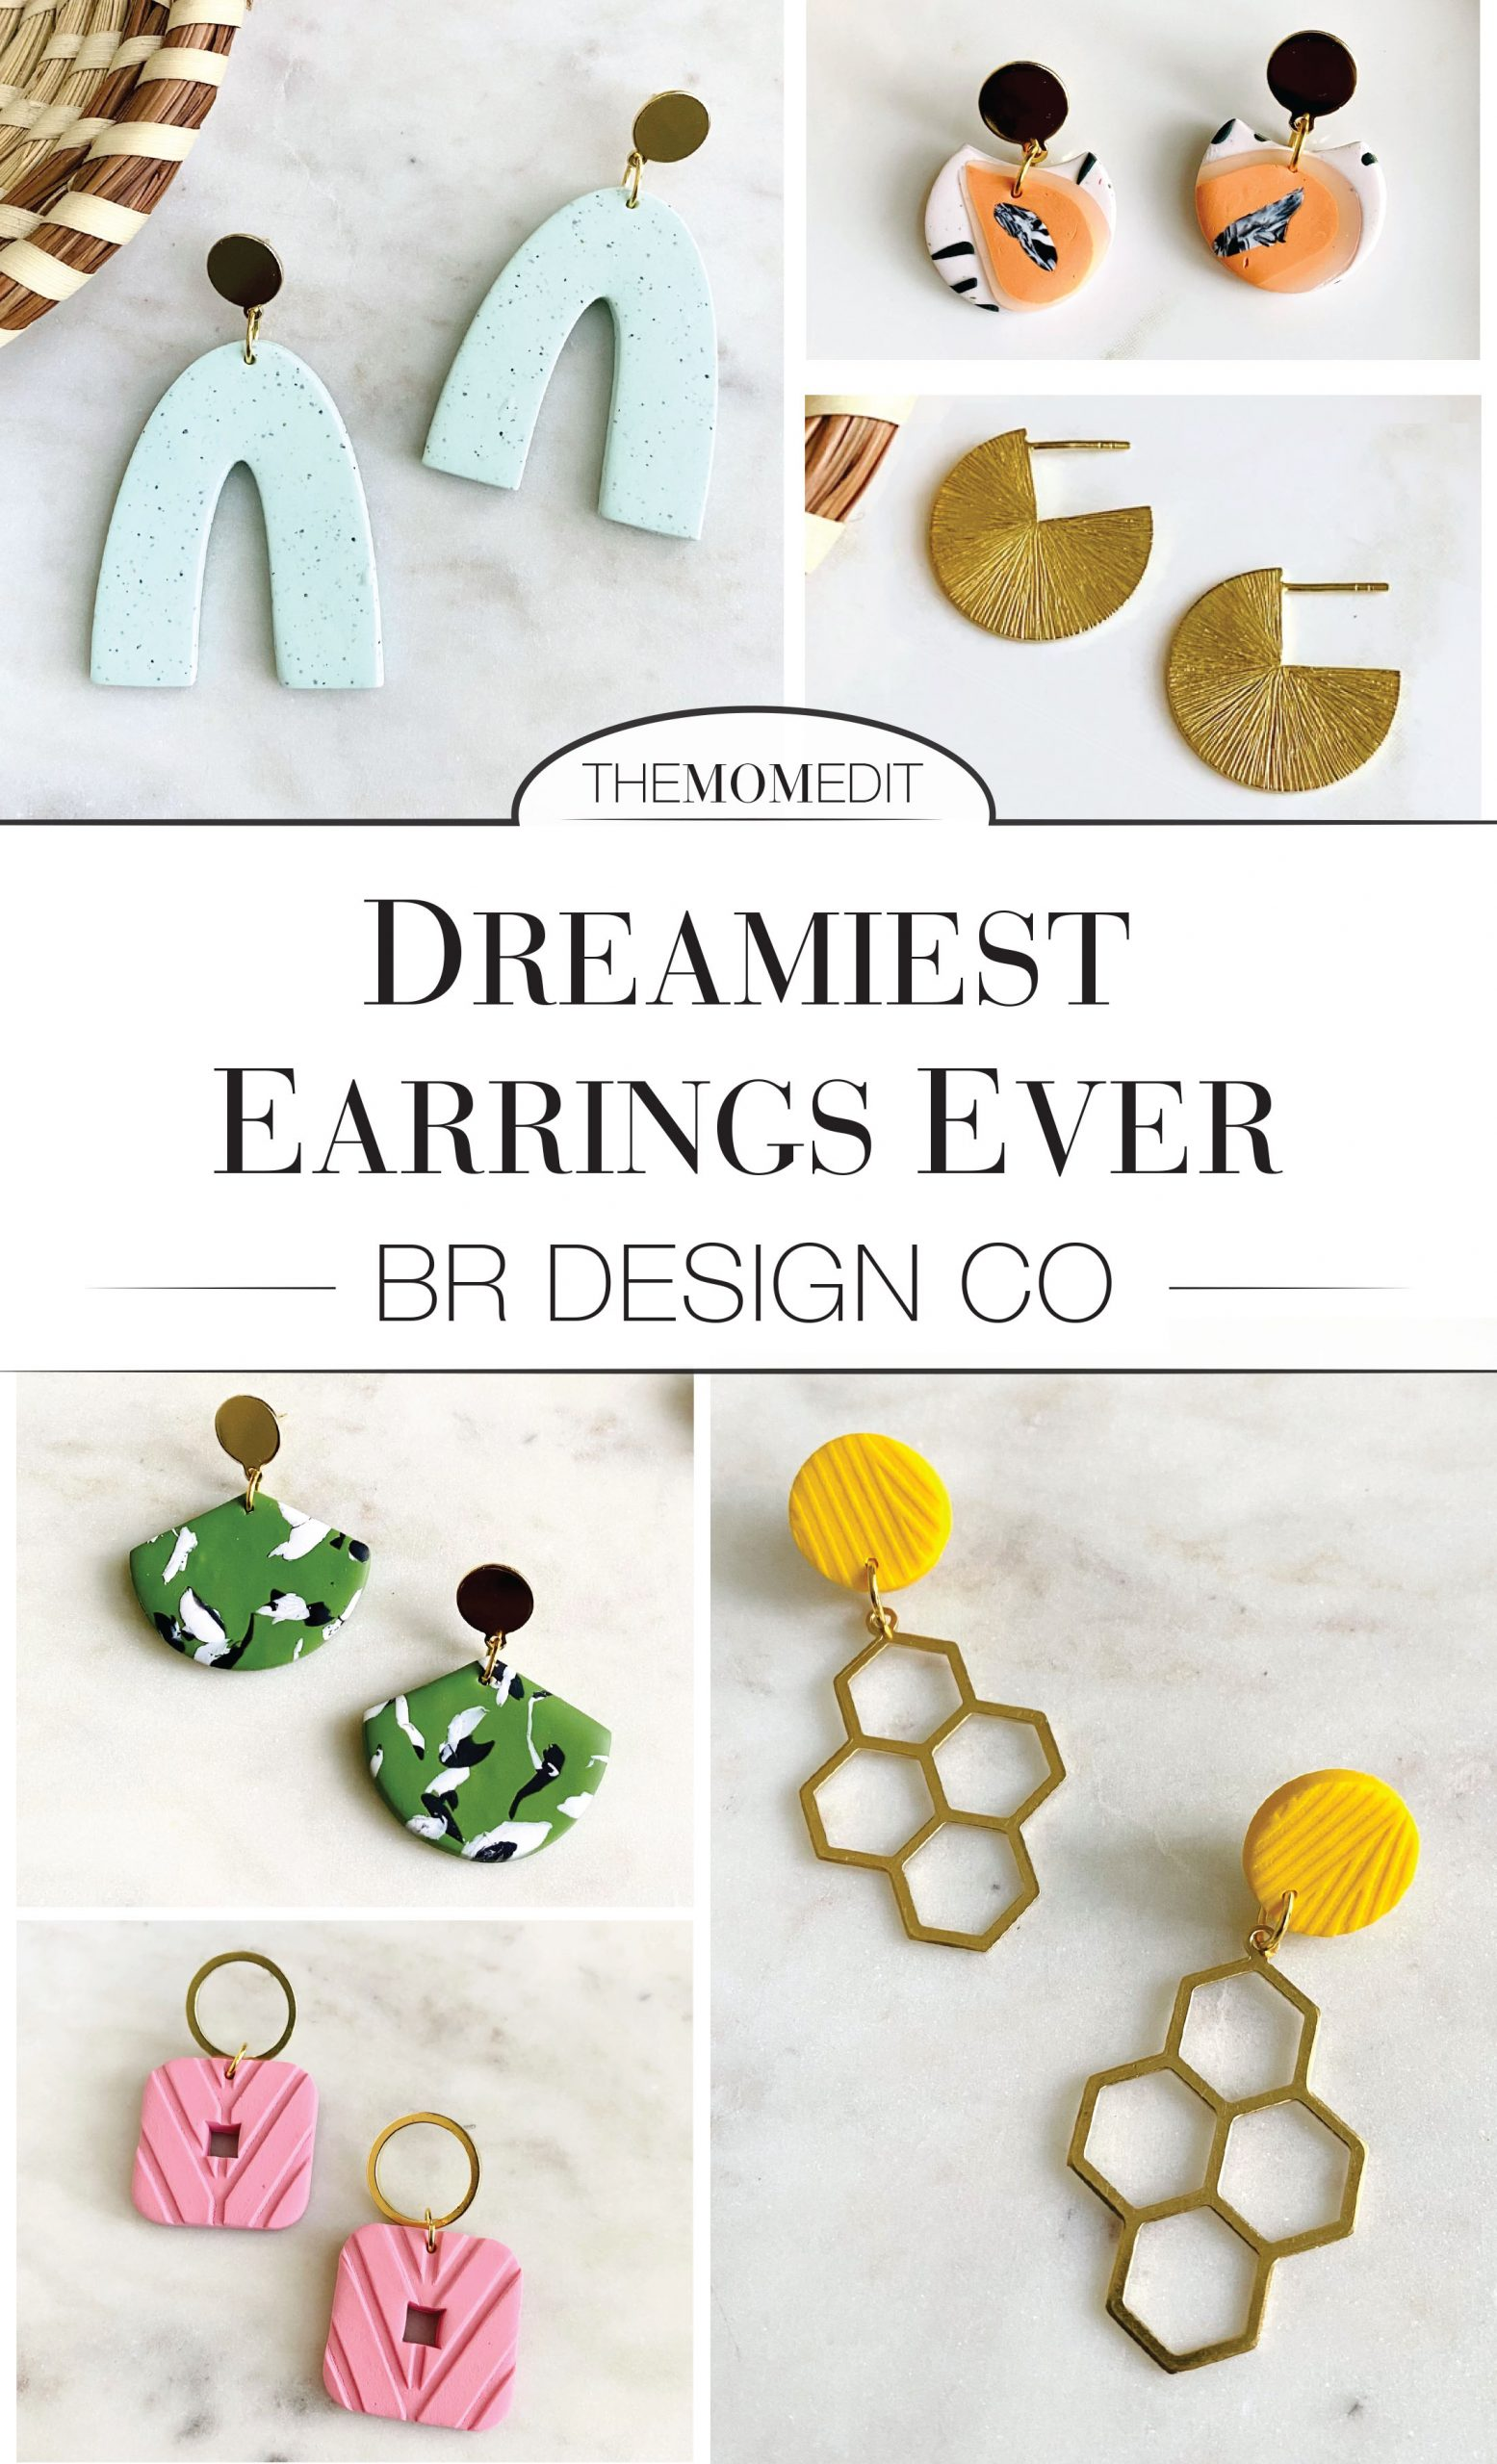 Shop Small: Cool Earrings From BR Design Co (A Black-Owned ...